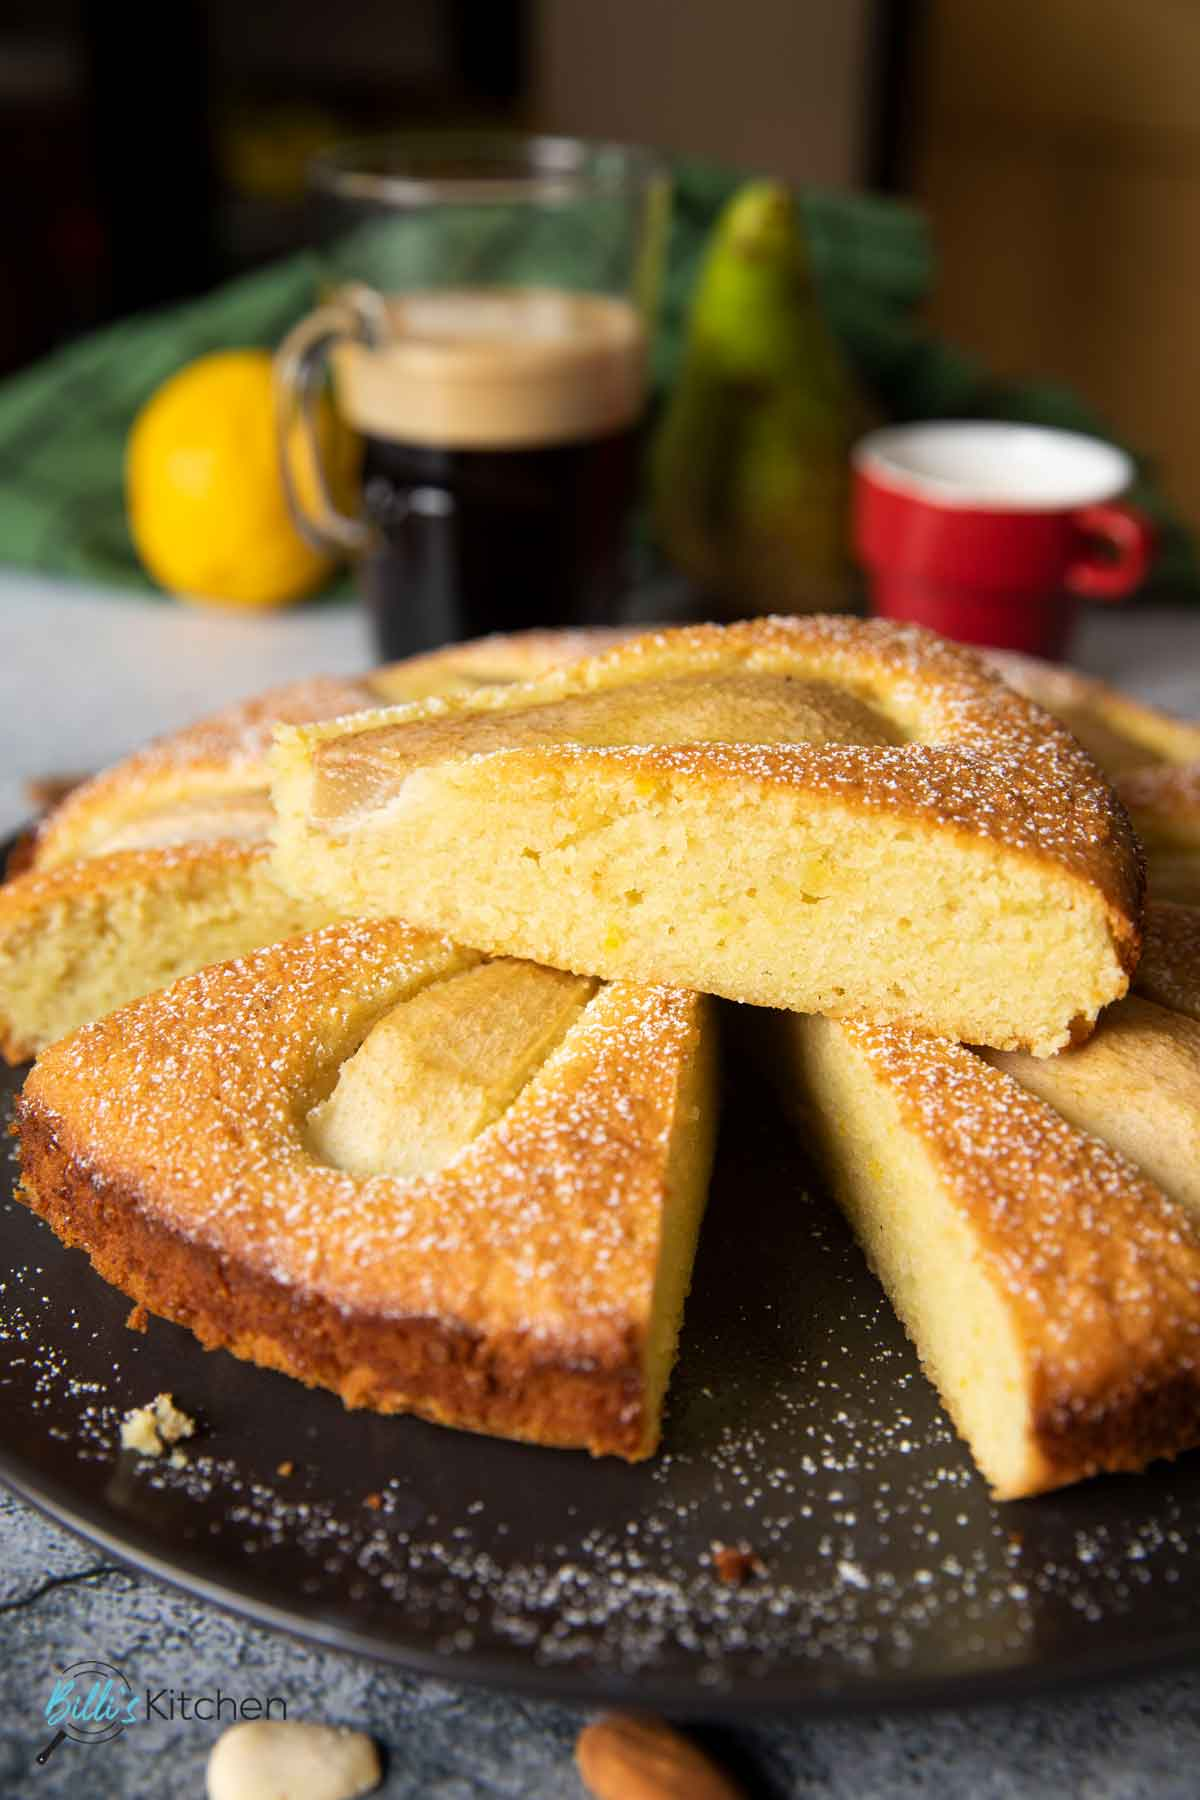 A closer image of a slice of Rustic Almond Pear Cake, highlighting the texture of the cake, with a tall glass of coffee and an espresso on the side.